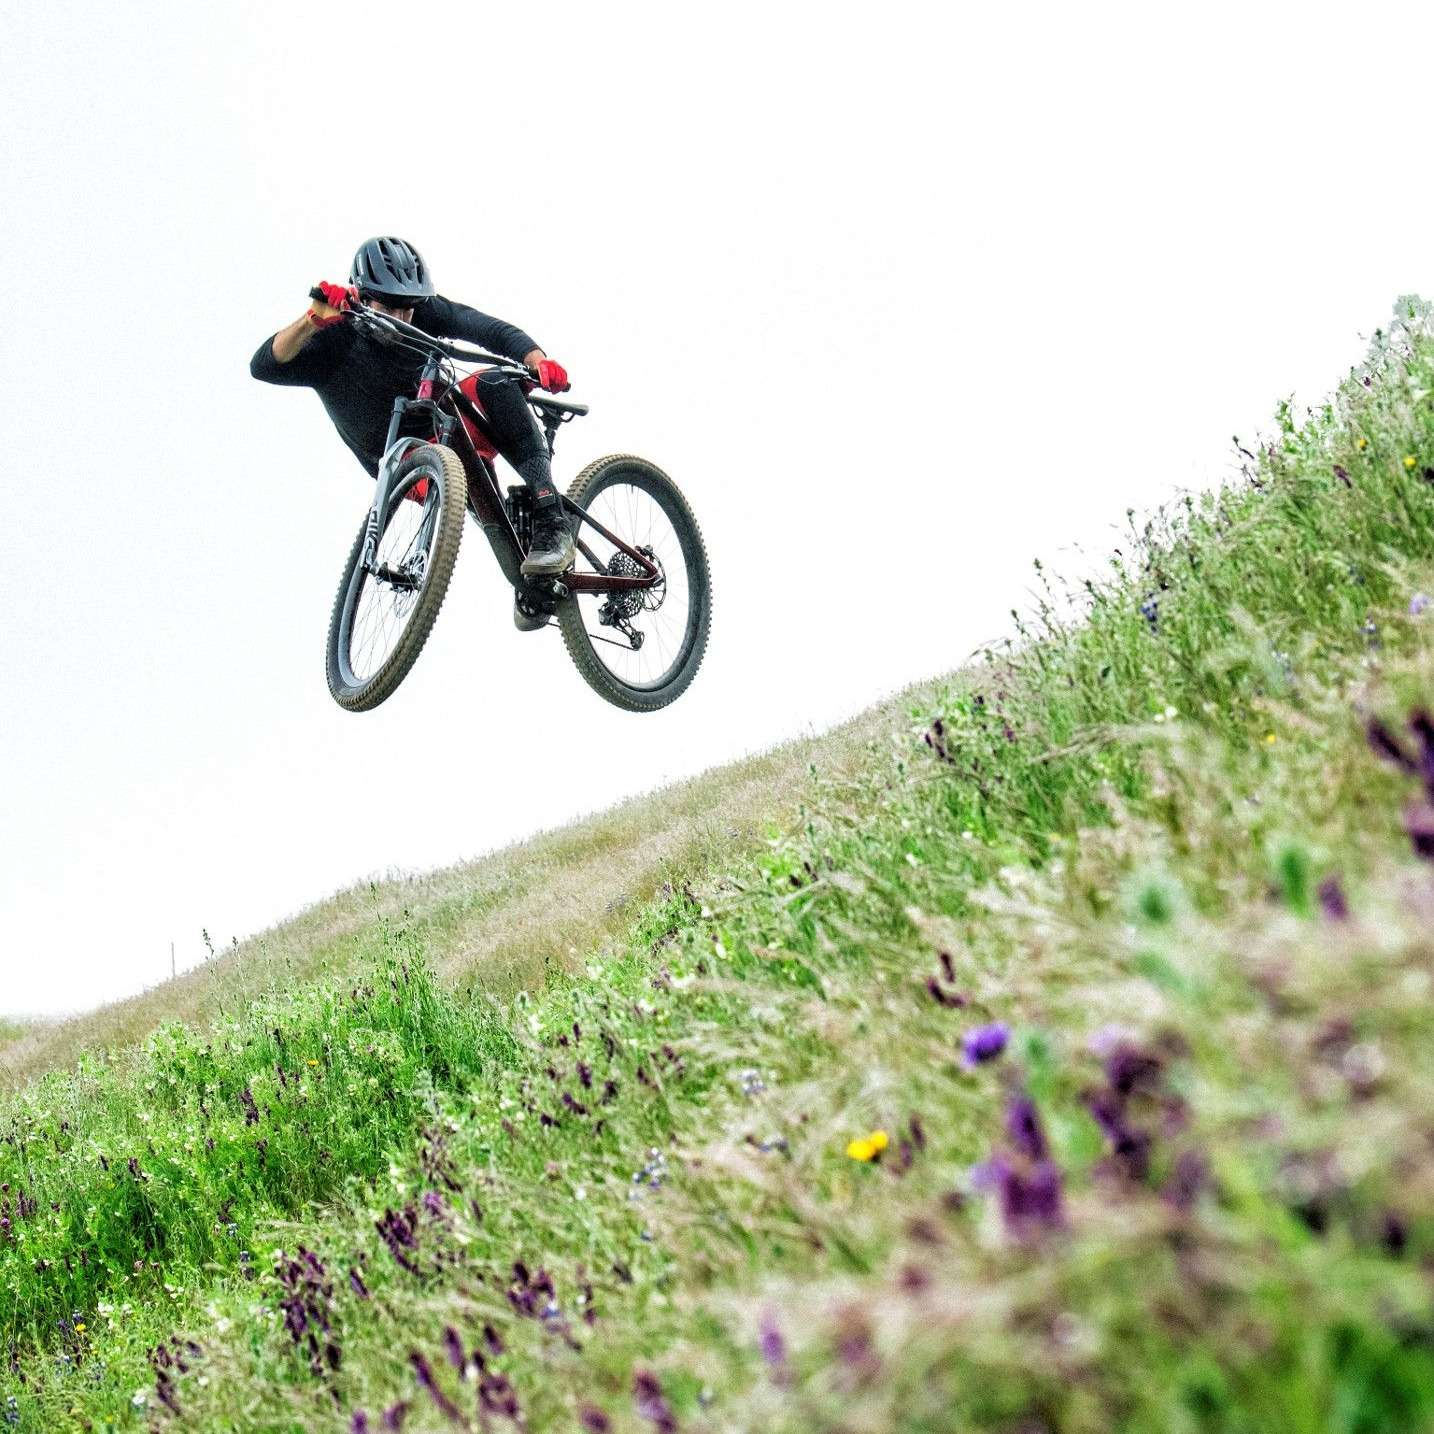 Generic picture of a mountain bike jumping